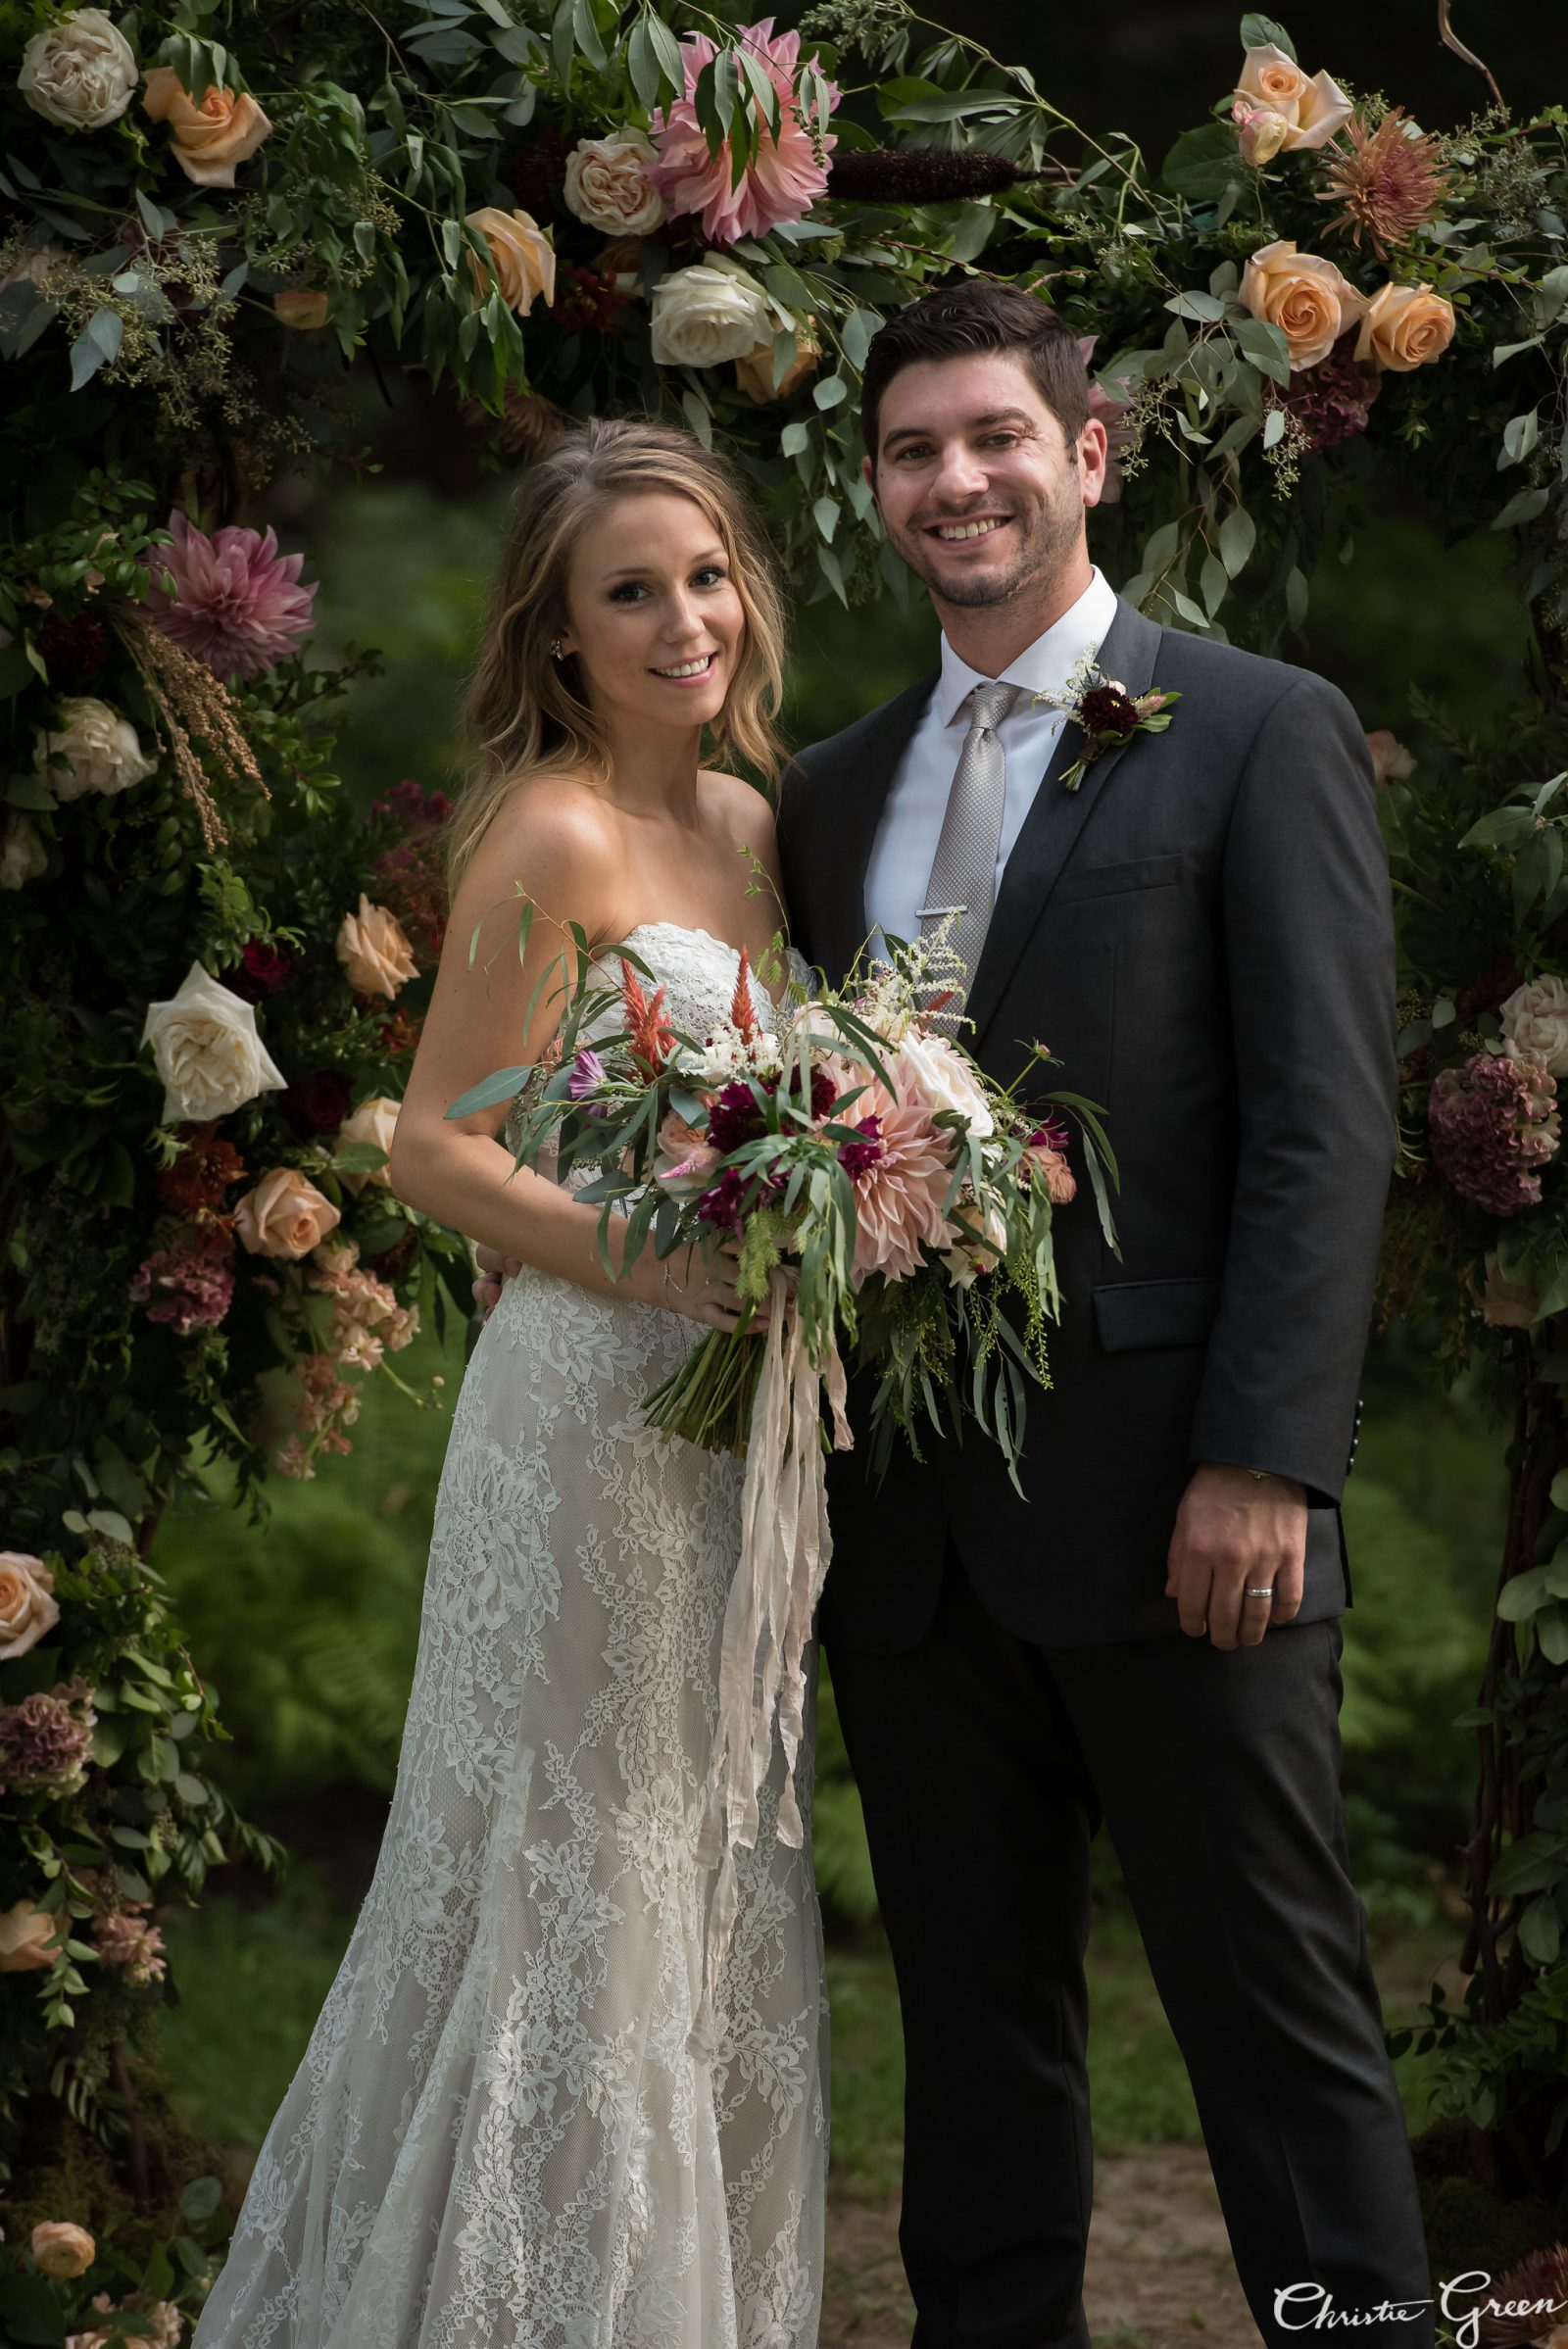 Bride in Justin Alexander and groom in front of romantic floral arch. Flowers by Fresh Designs Florist. Photo by Christie Green Photography